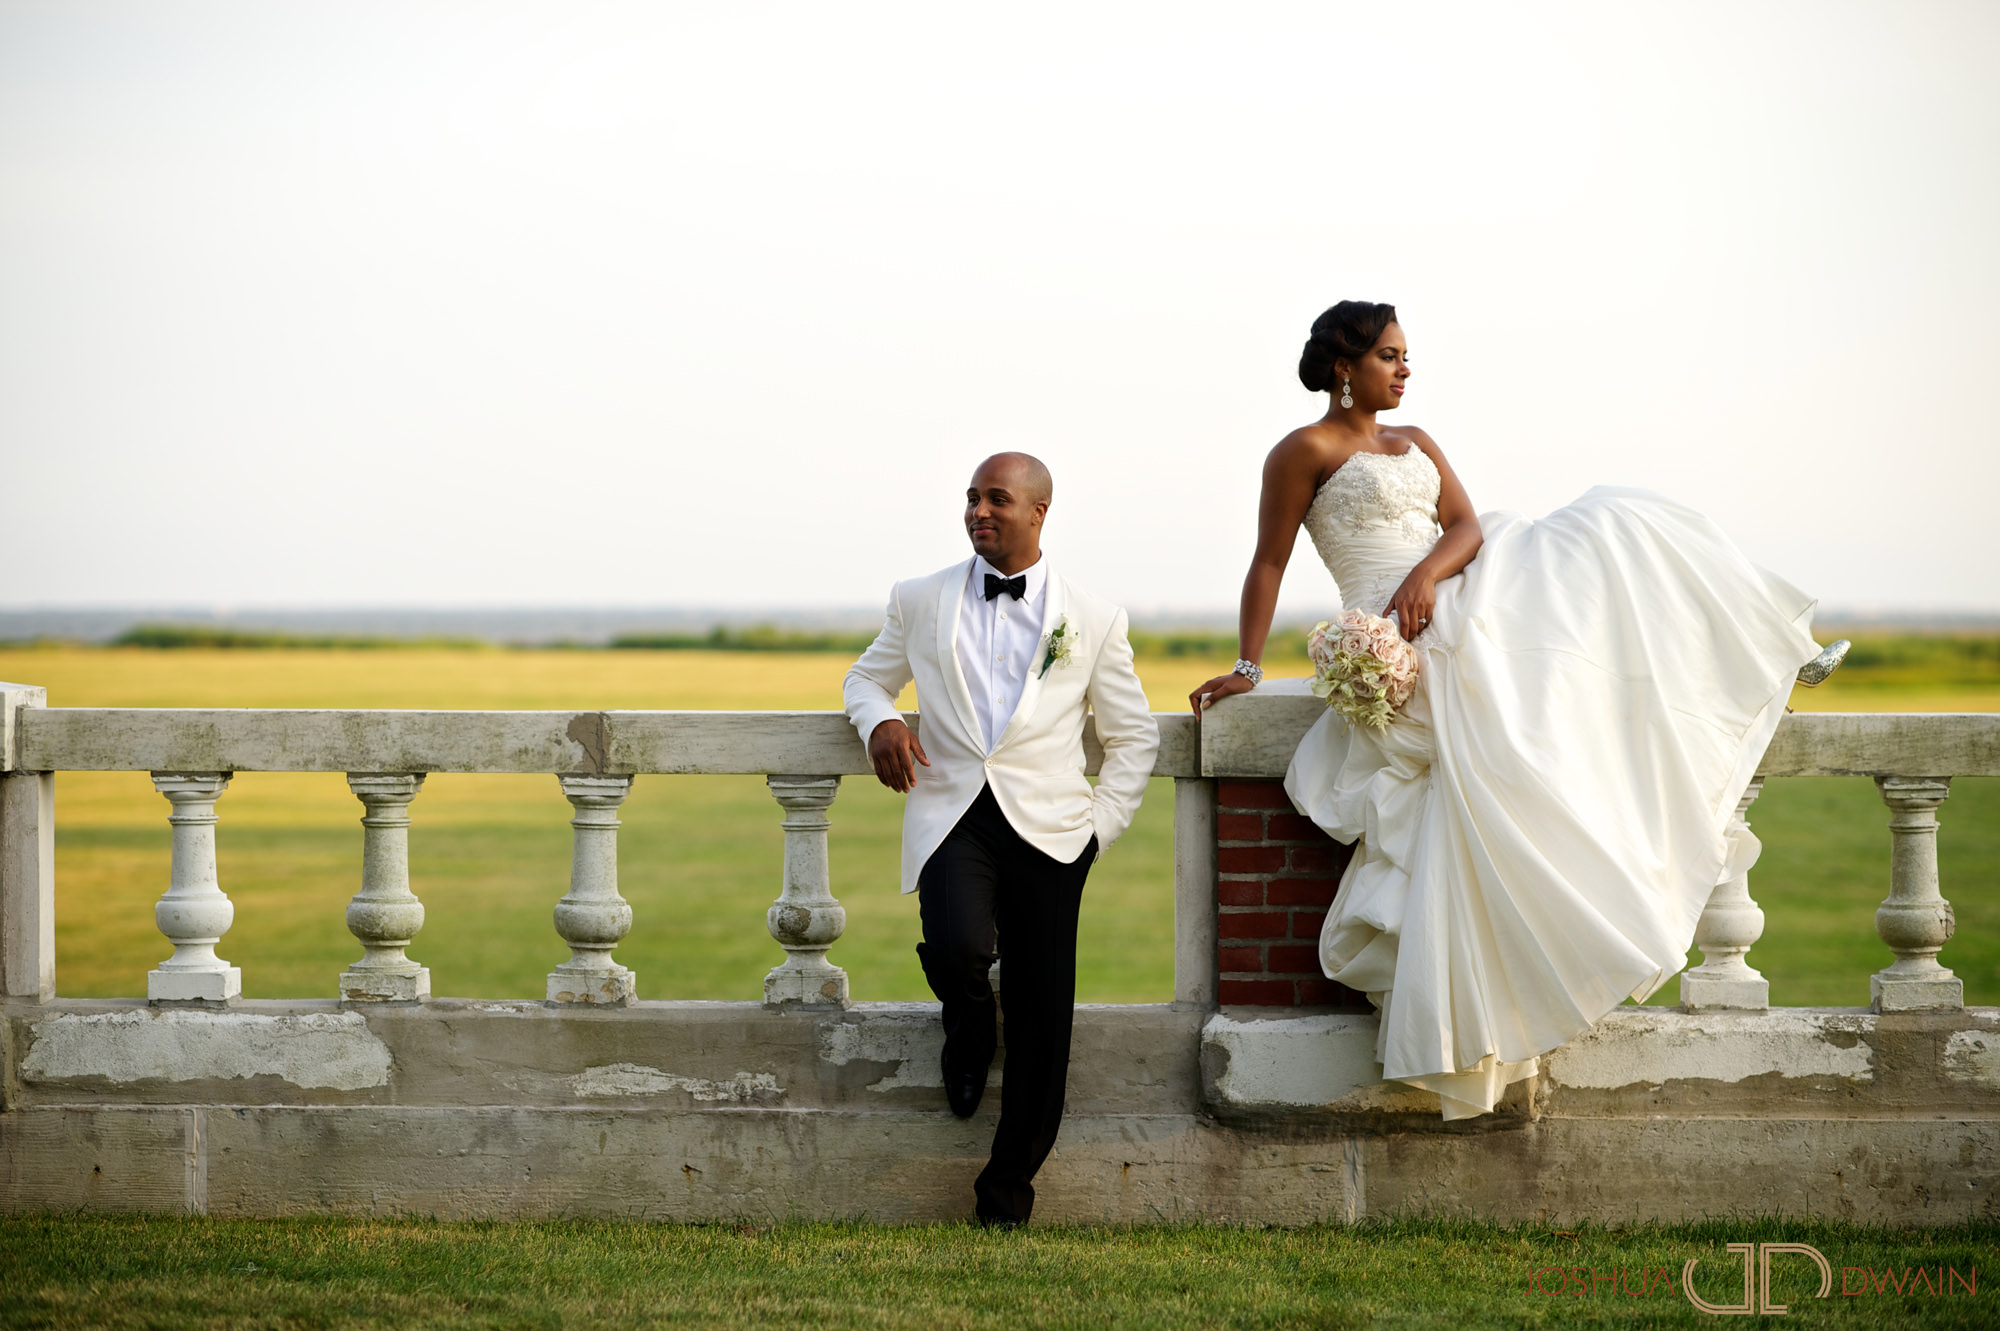 patricia-daniel-001-the-bourne-mansion-long-island-wedding-photographer-joshua-dwain-2012-07-08_pf_601